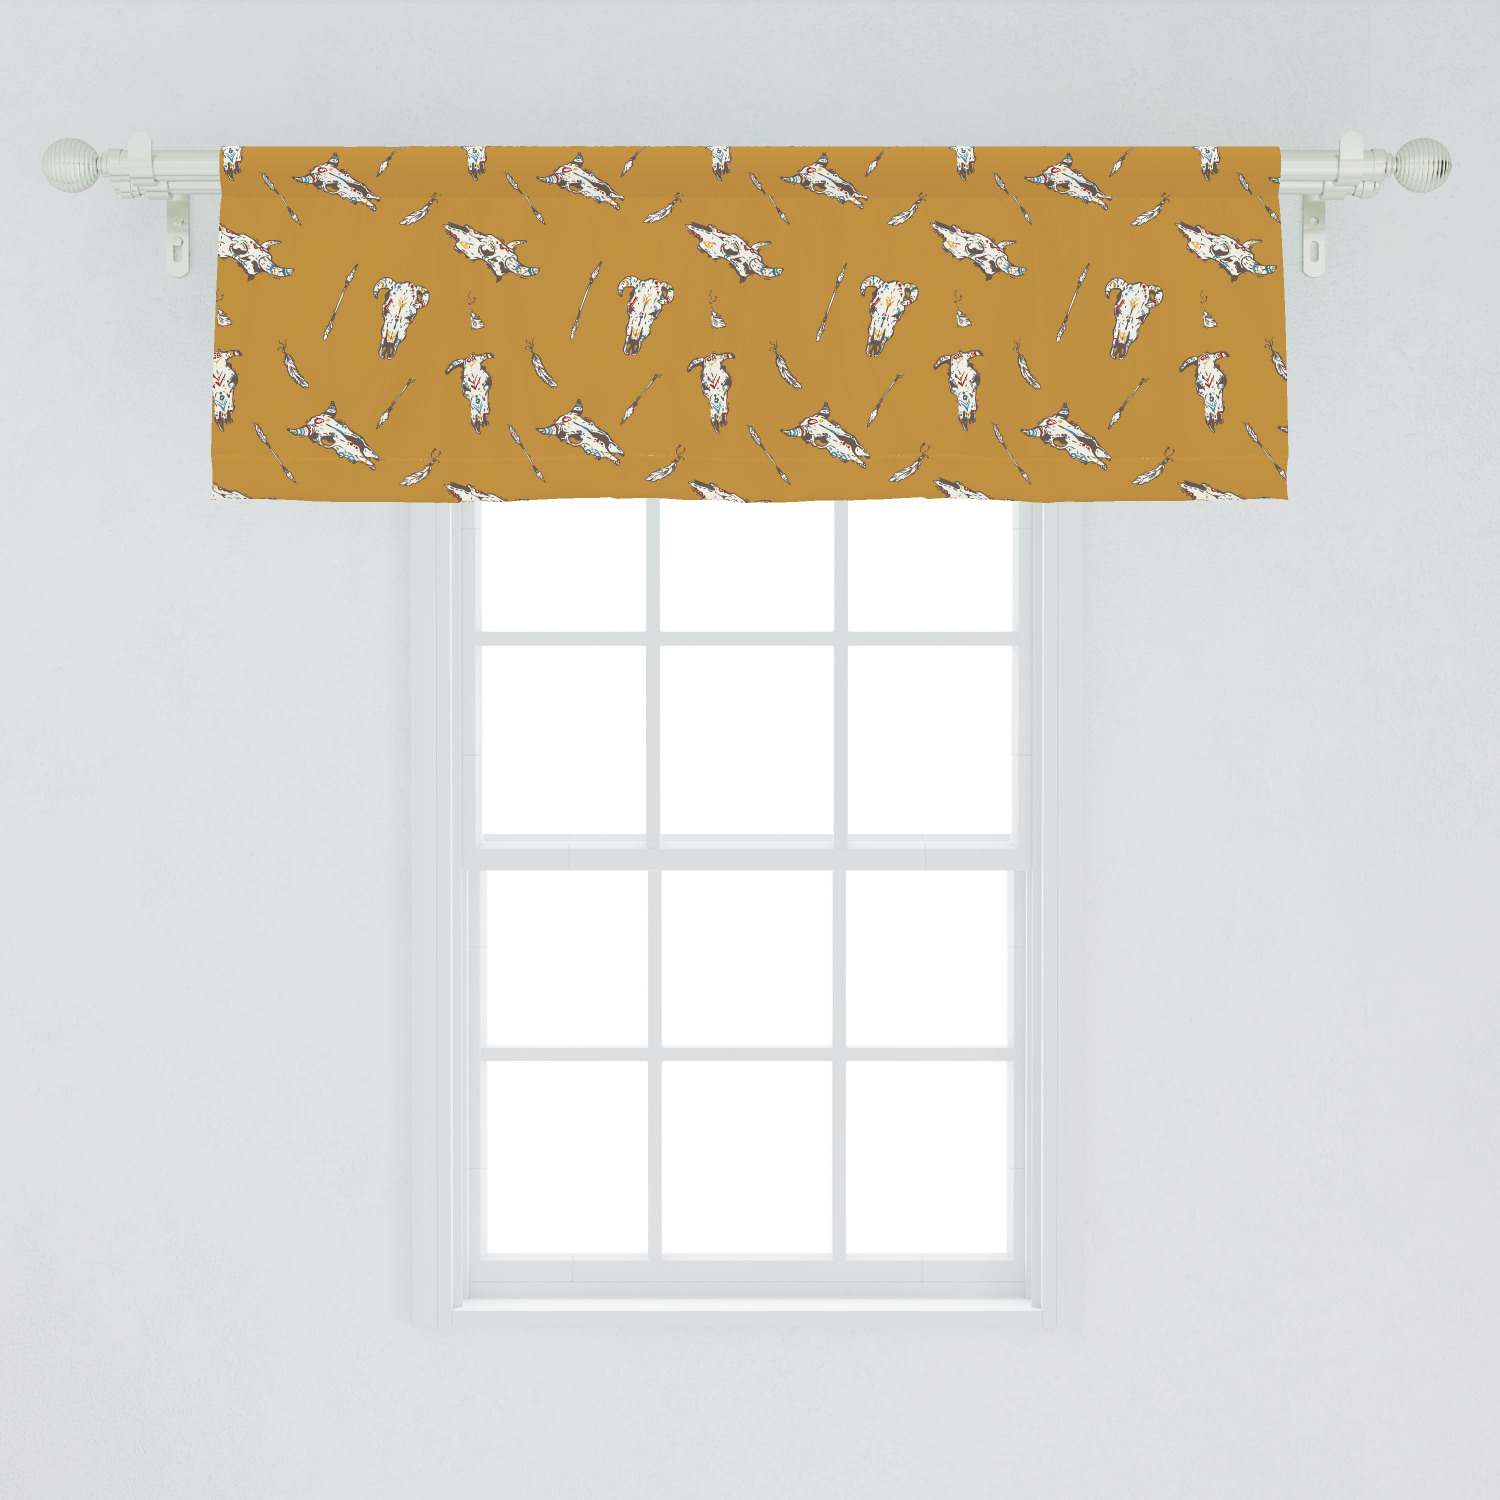 Rodeo Window Valance Bohemian Print Of Cow Skulls With Retro Element And Feathers Wild West Curtain Valance For Kitchen Bedroom Decor With Rod Pocket By Ambesonne Walmart Com Walmart Com